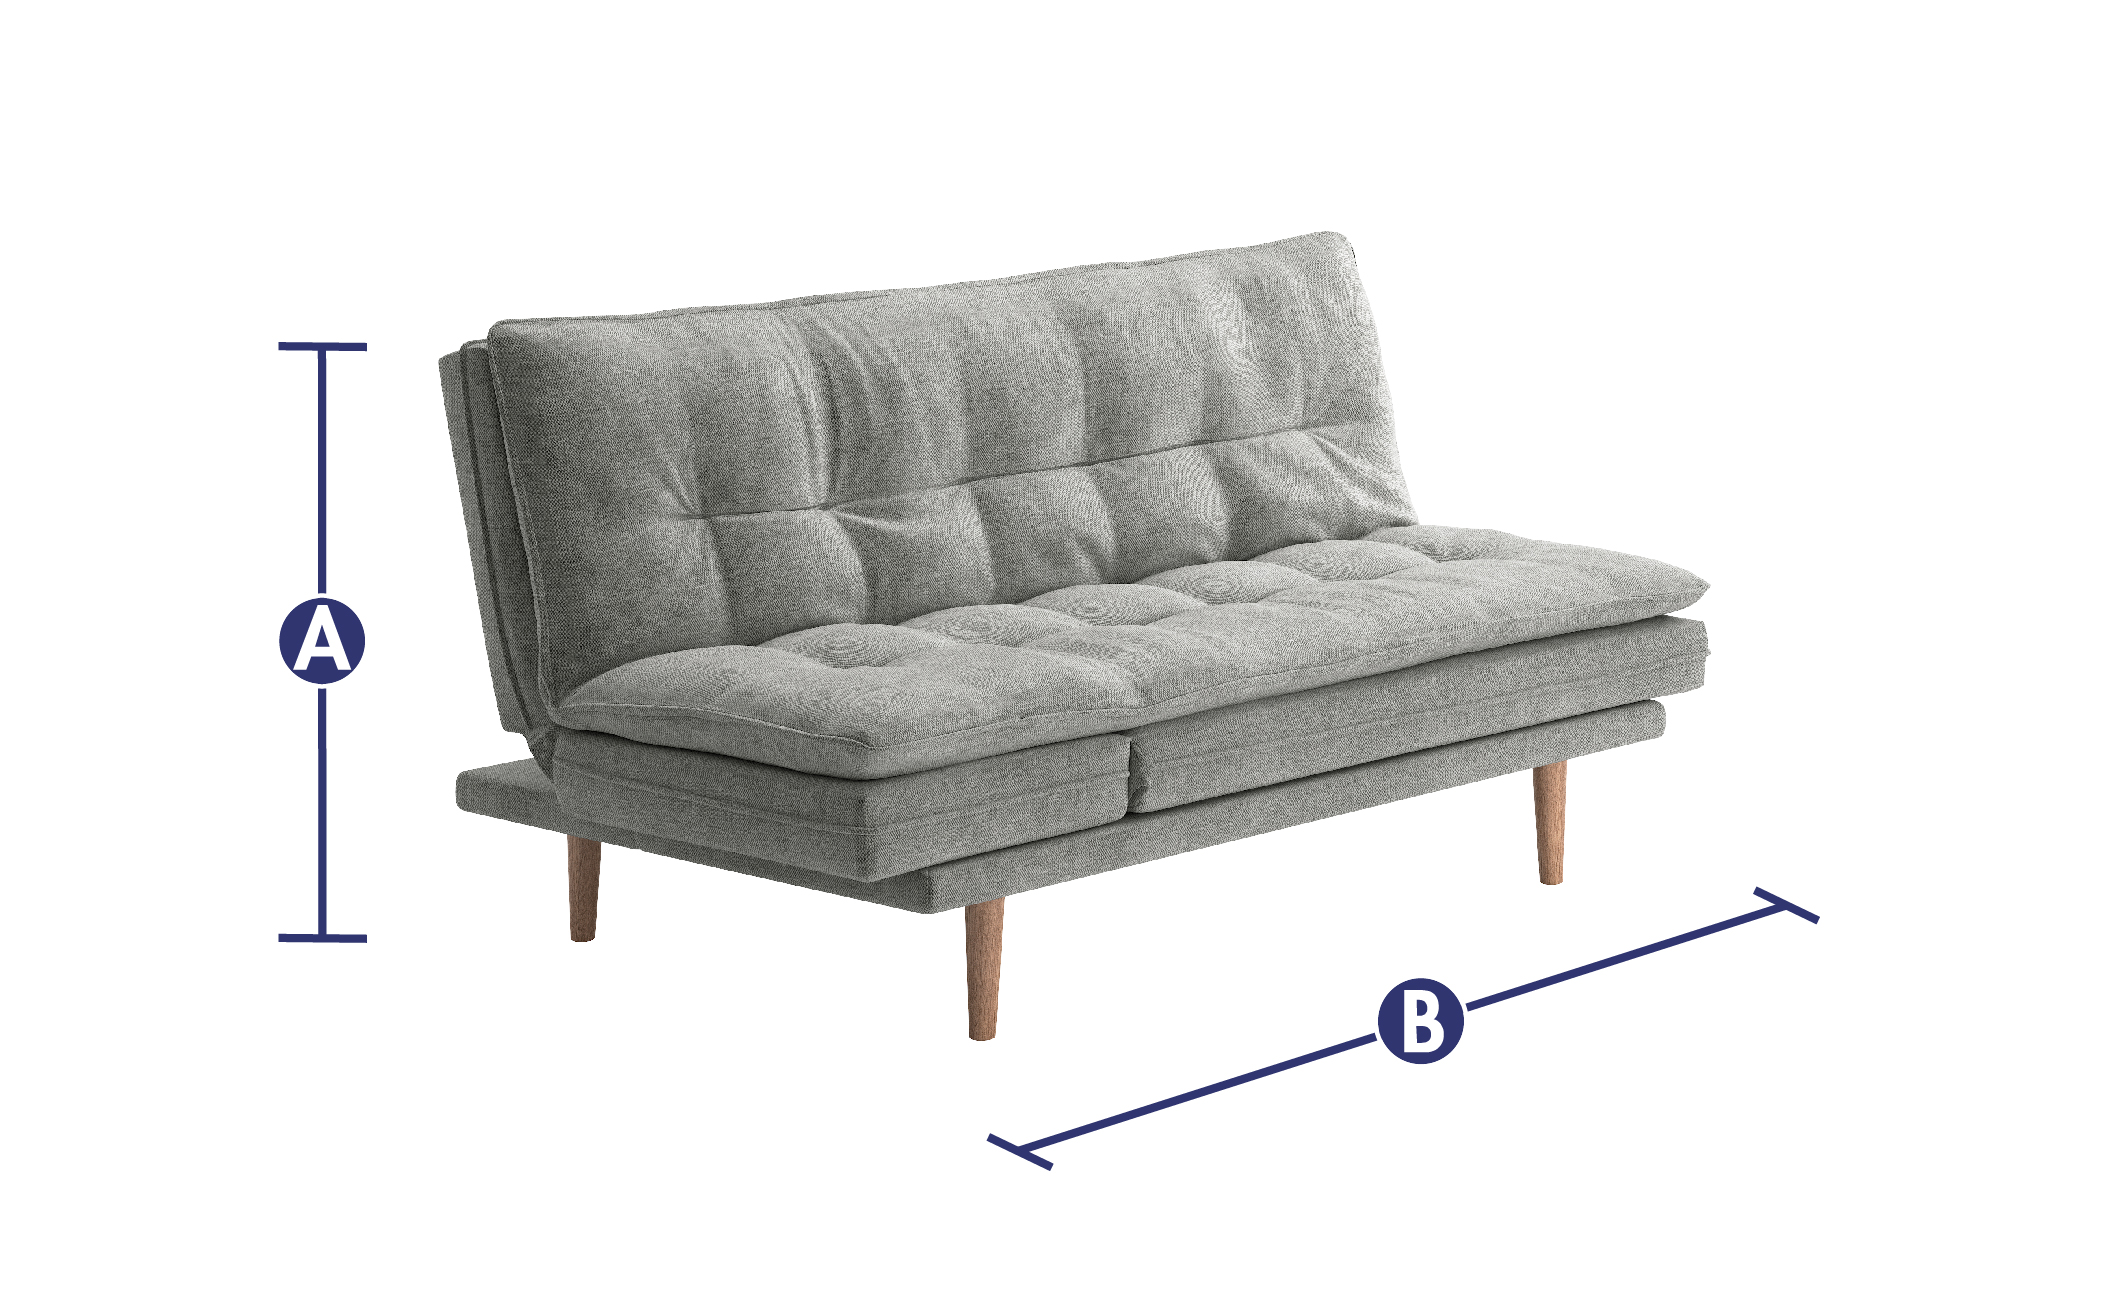 Fine Dublin 3 Seater Clic Clac Chaise Sofa Bed All Sofa Beds Alphanode Cool Chair Designs And Ideas Alphanodeonline